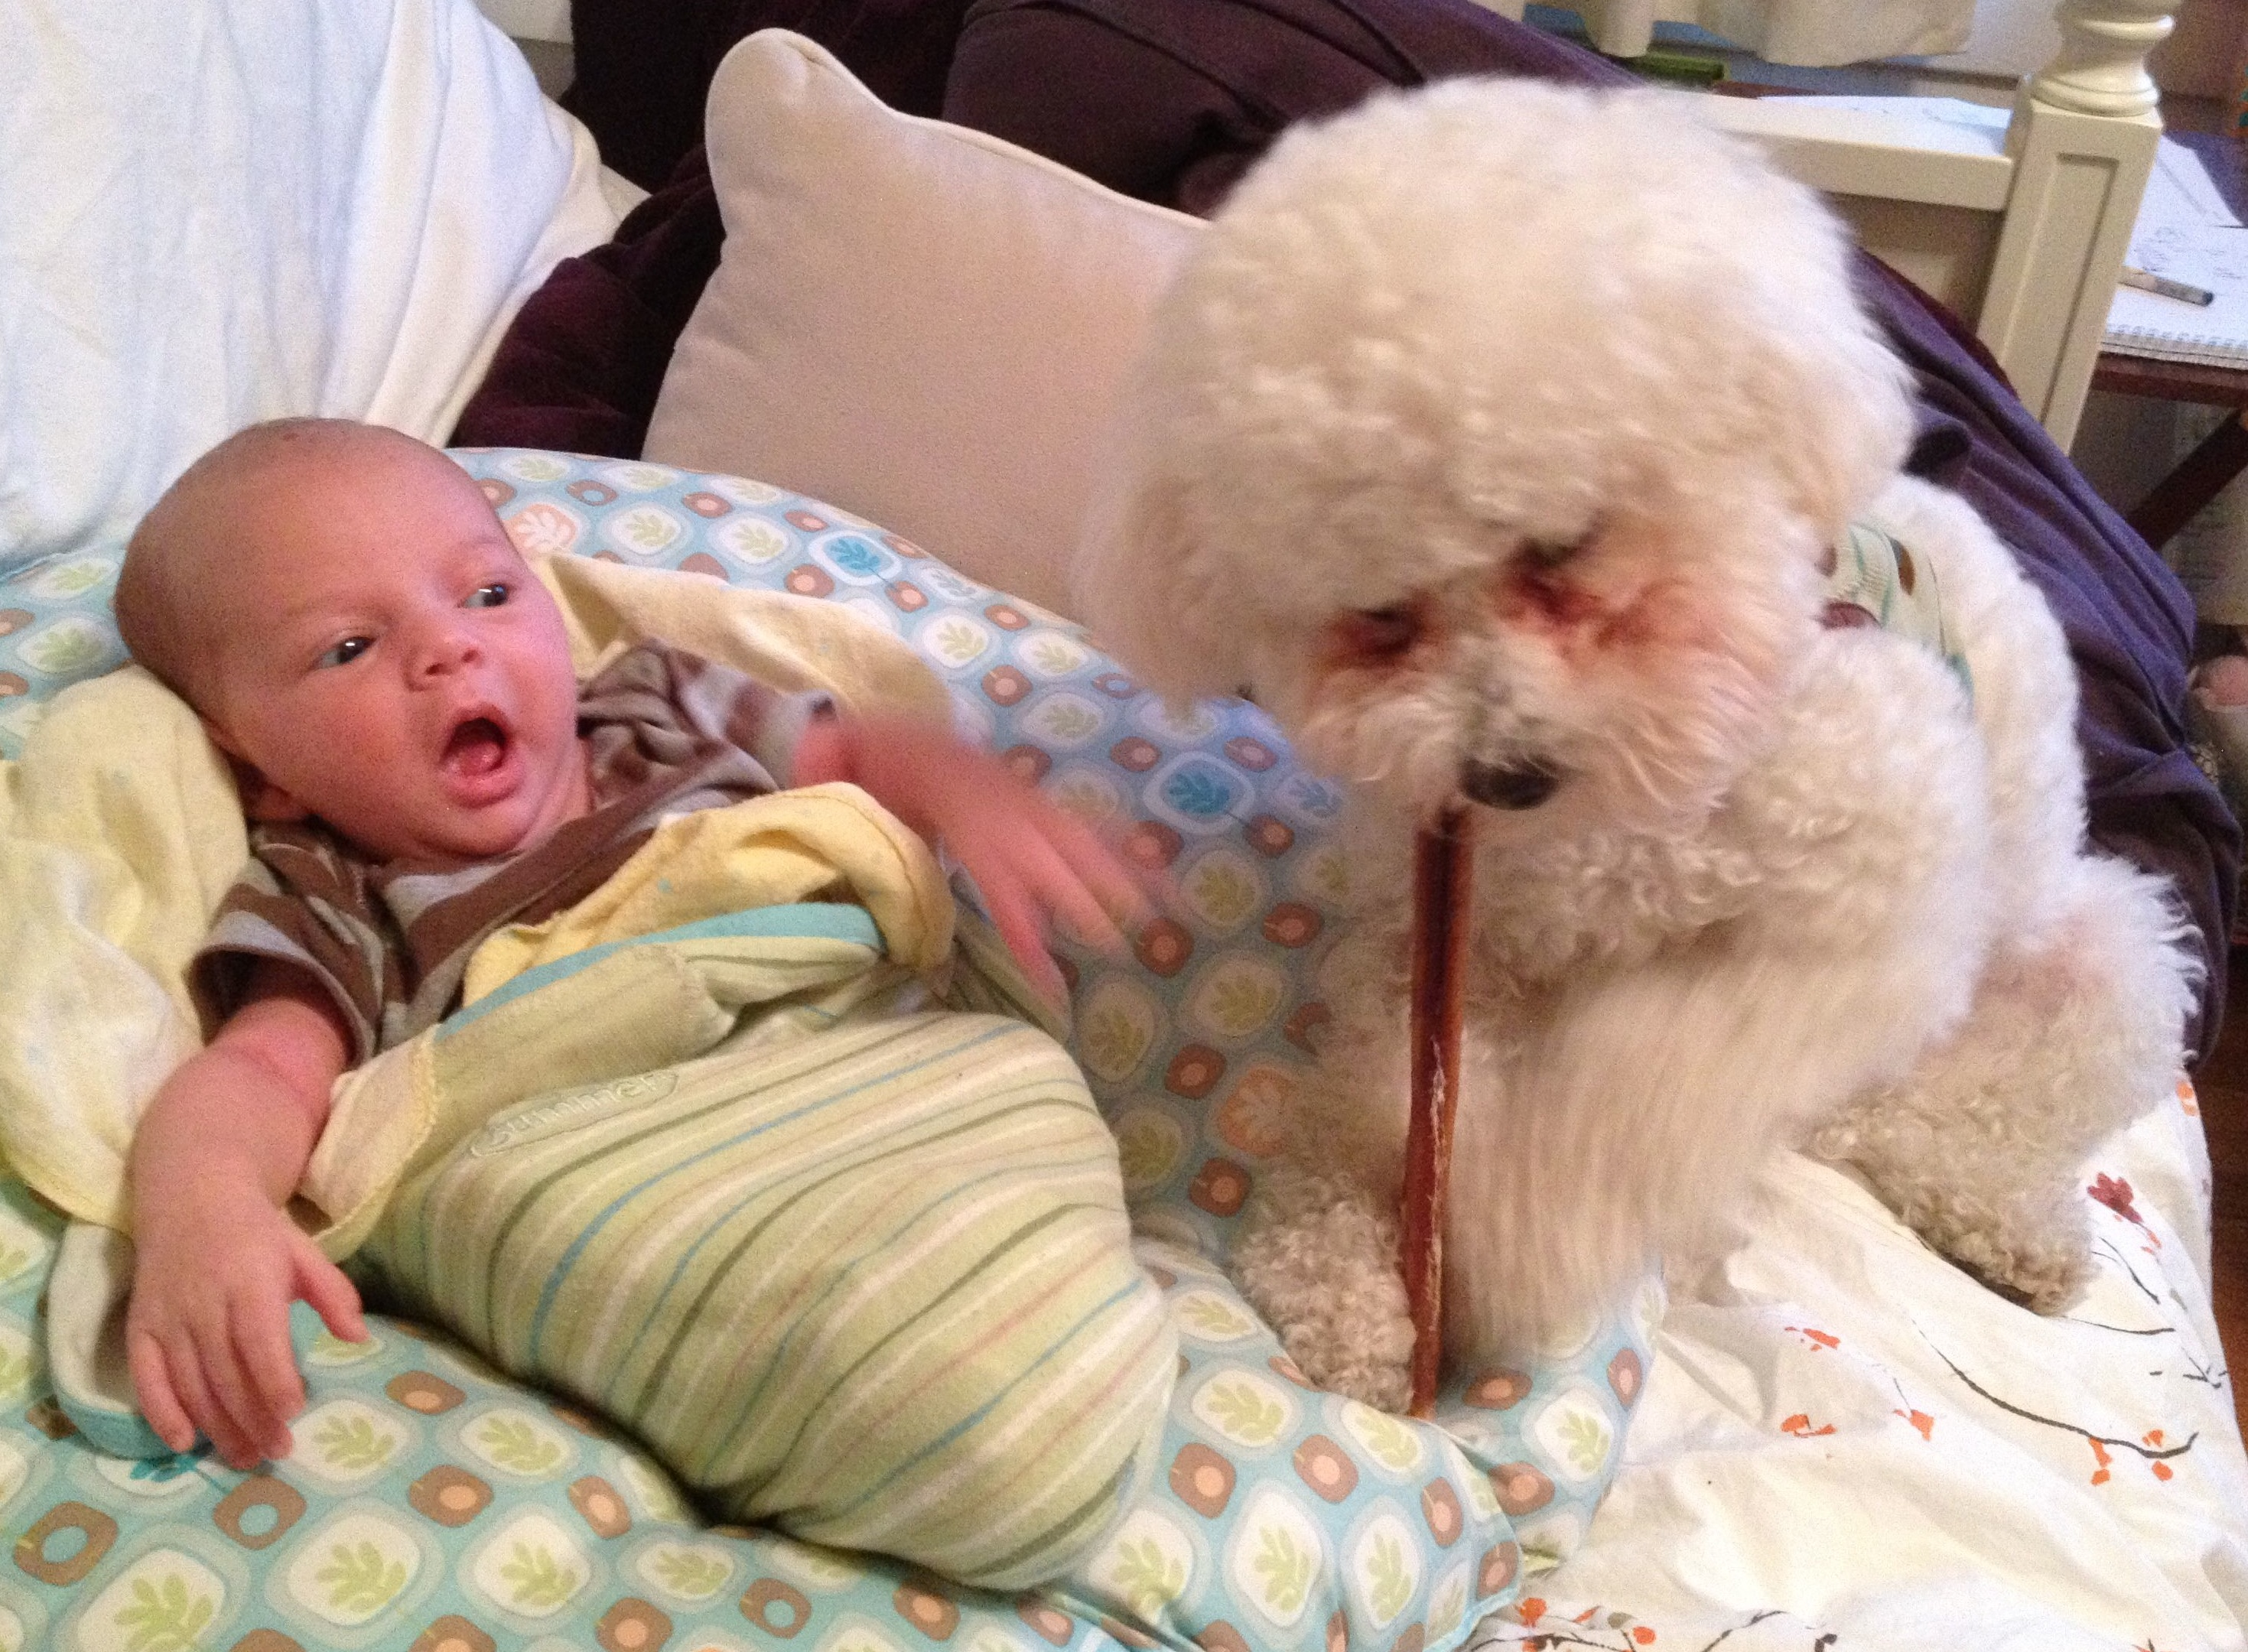 Baby boy Sam is swaddled on a Boppy, while a white bichon frise puppy chomps on a bully stick. Sam looks like he's talking to the dog.